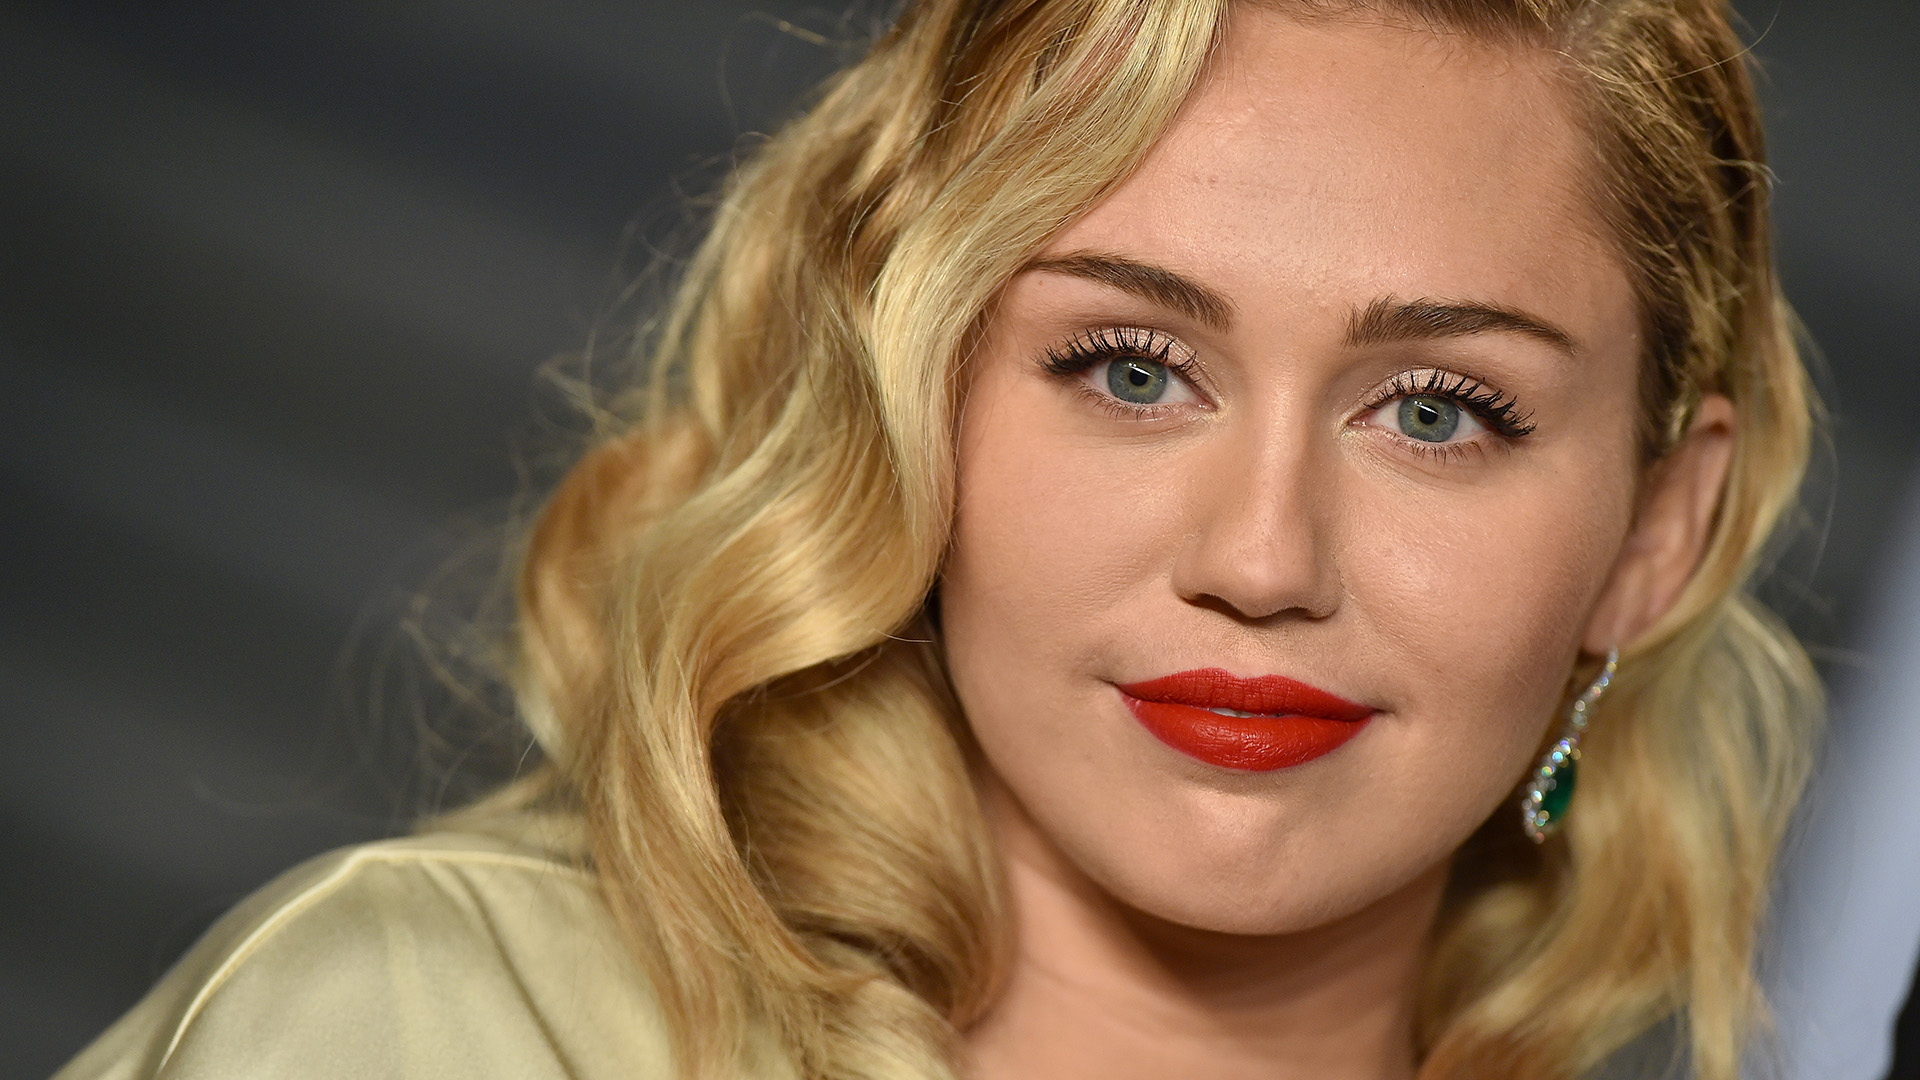 Miley Cyrus Accused of Cultural Appropriation for Dancing to a Rap Song